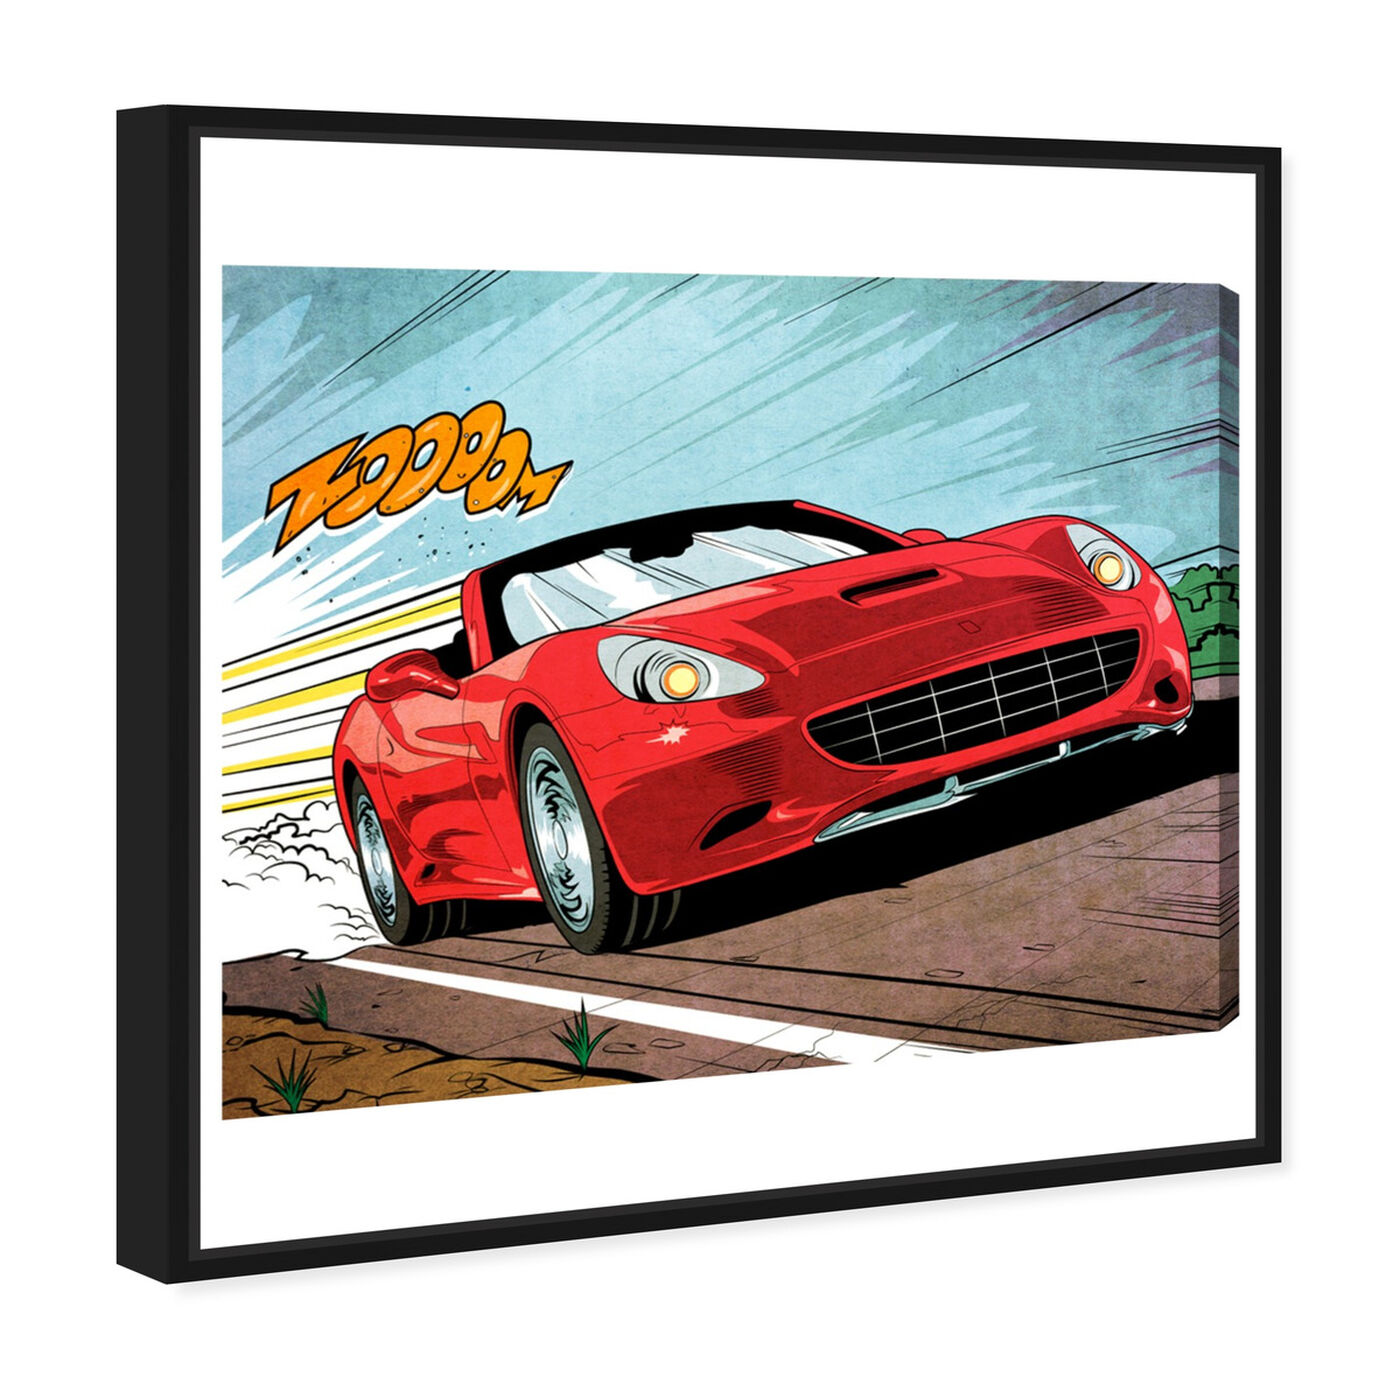 Angled view of Vroom featuring advertising and comics art.